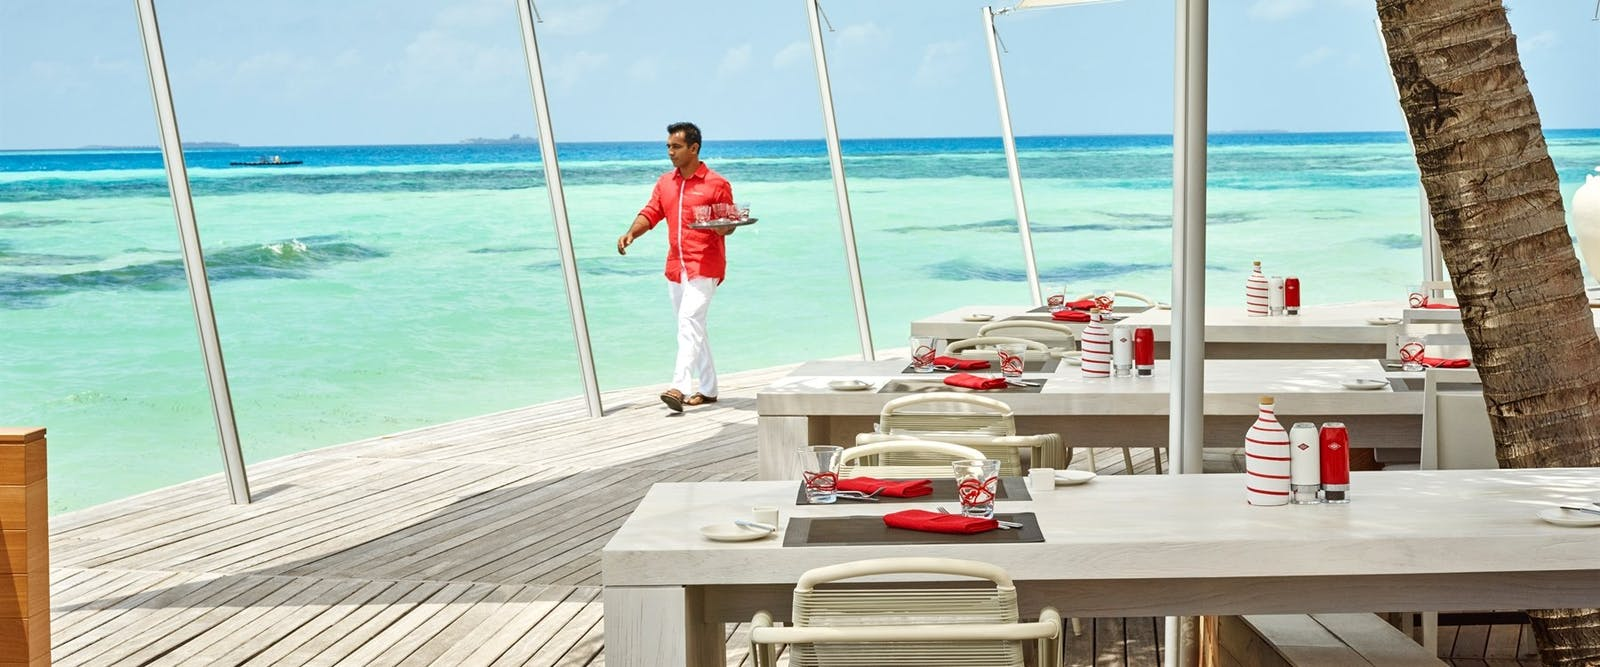 Beach Rouge at LUX* South Ari Atoll, Maldives, Indian Ocean